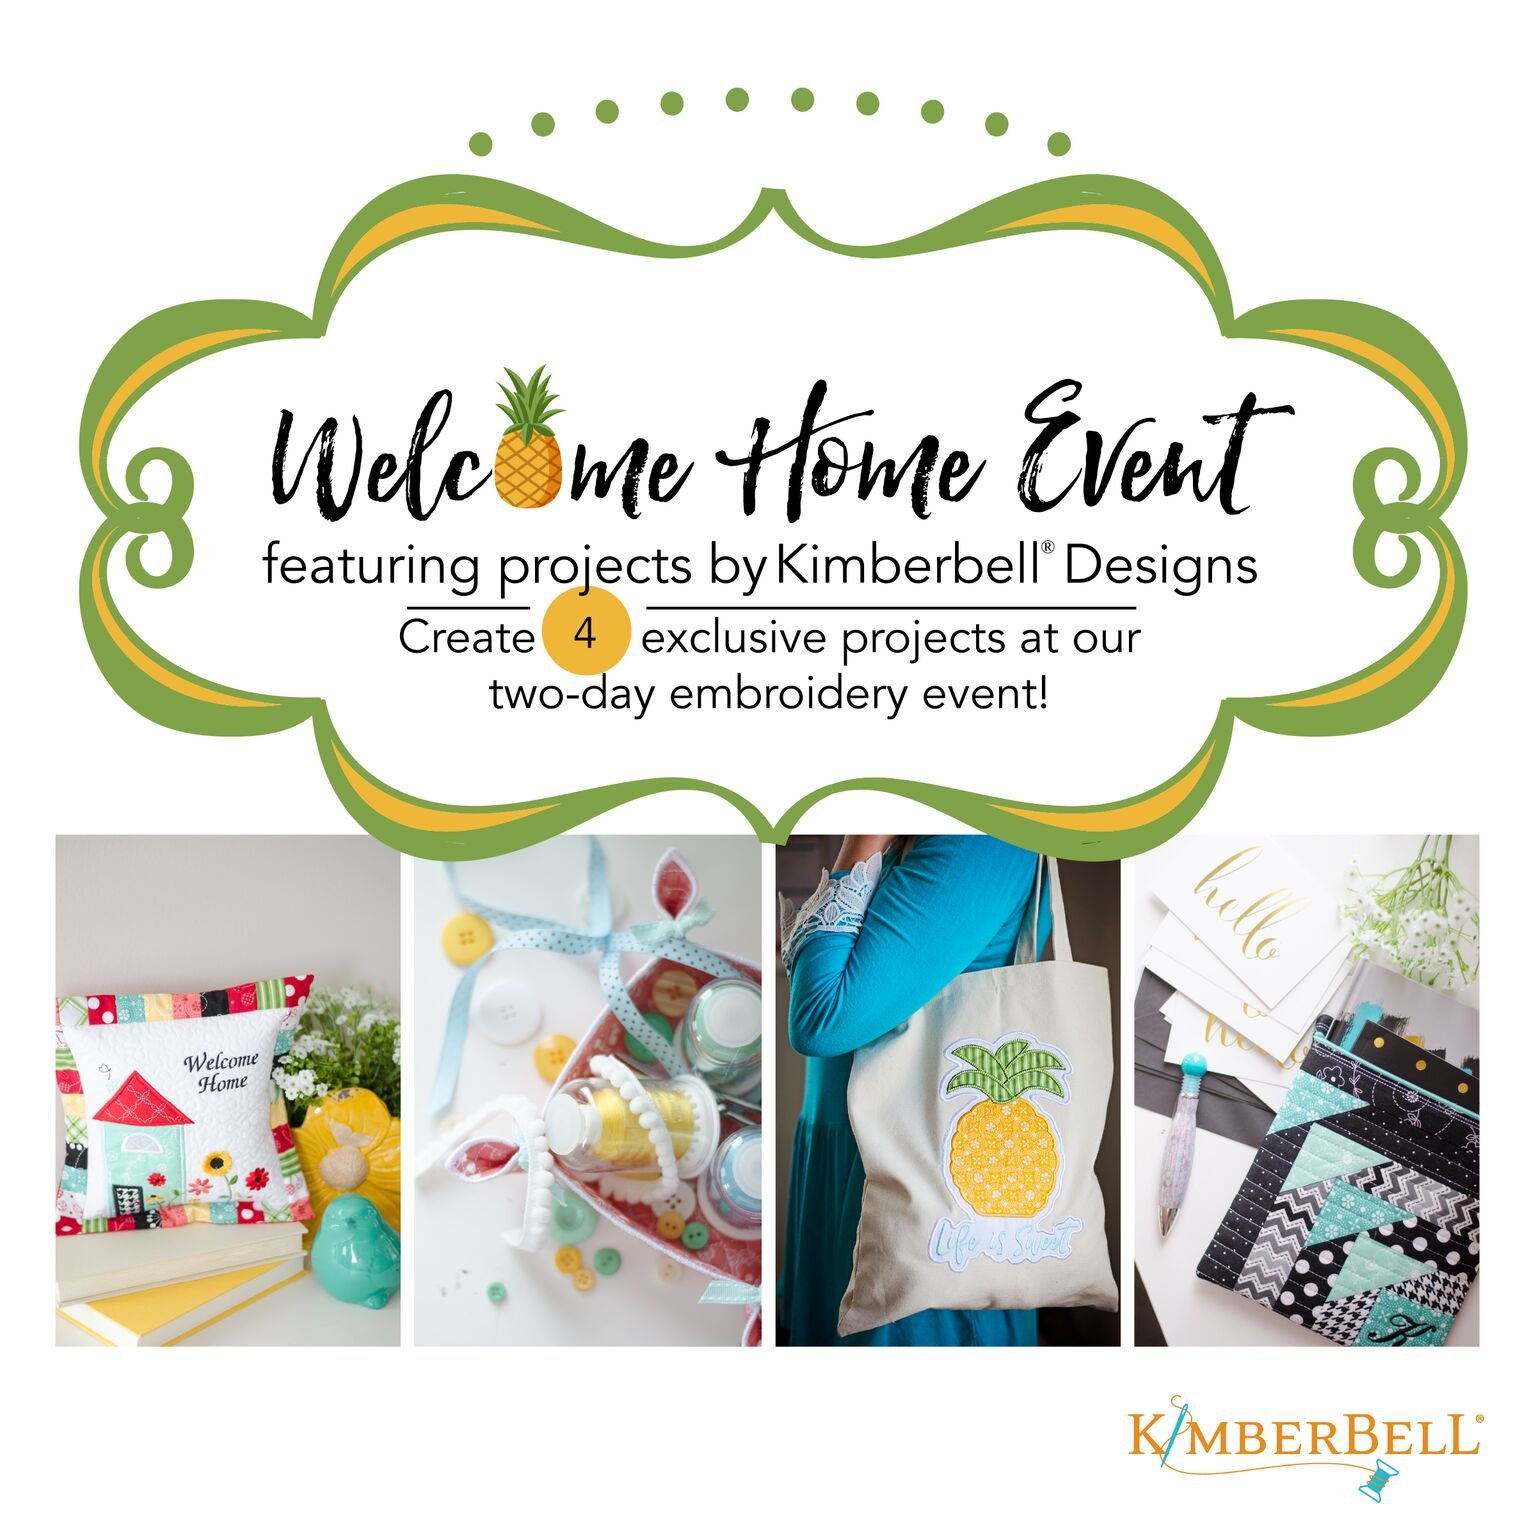 Kimberbell Welcome Home Event